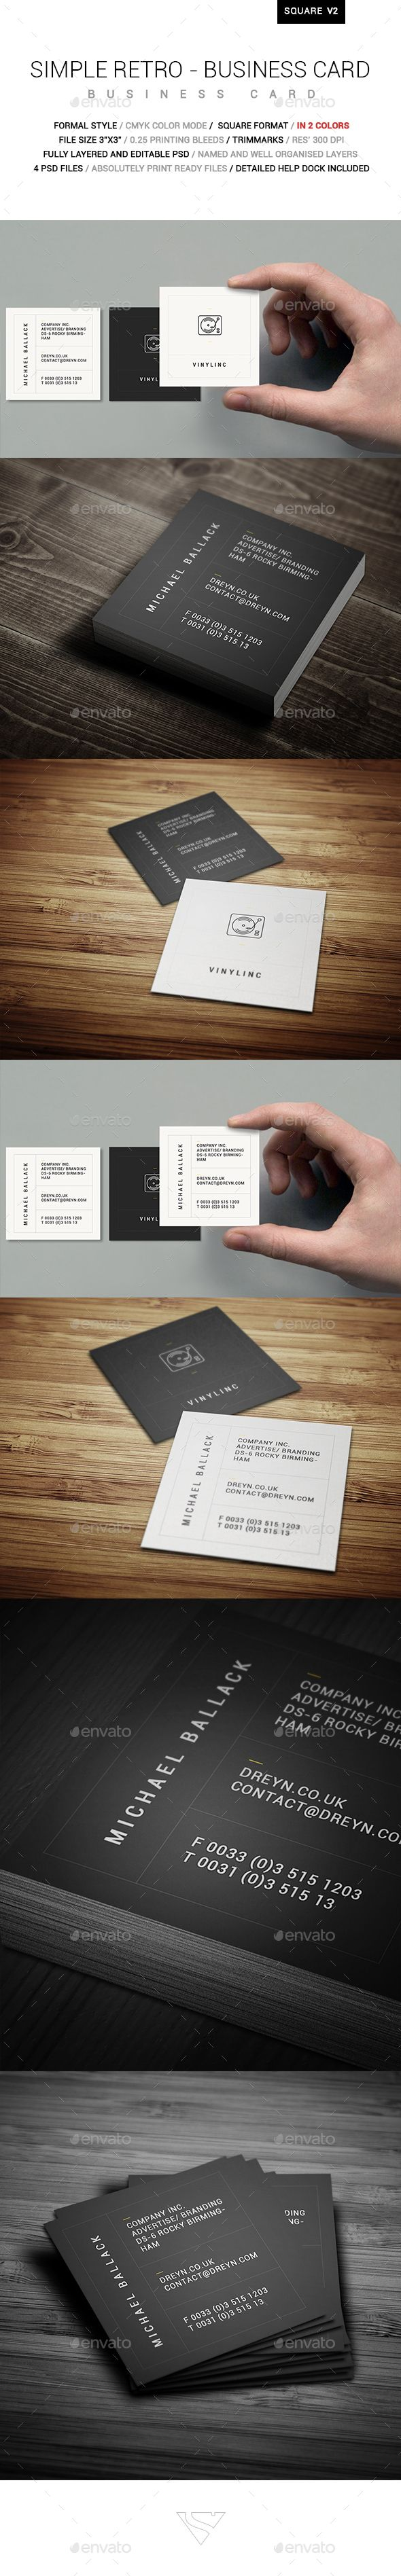 Simple Retro Square Business Card - #Corporate #Business #Cards Download here: https://graphicriver.net/item/simple-retro-square-business-card/19452143?ref=alena994